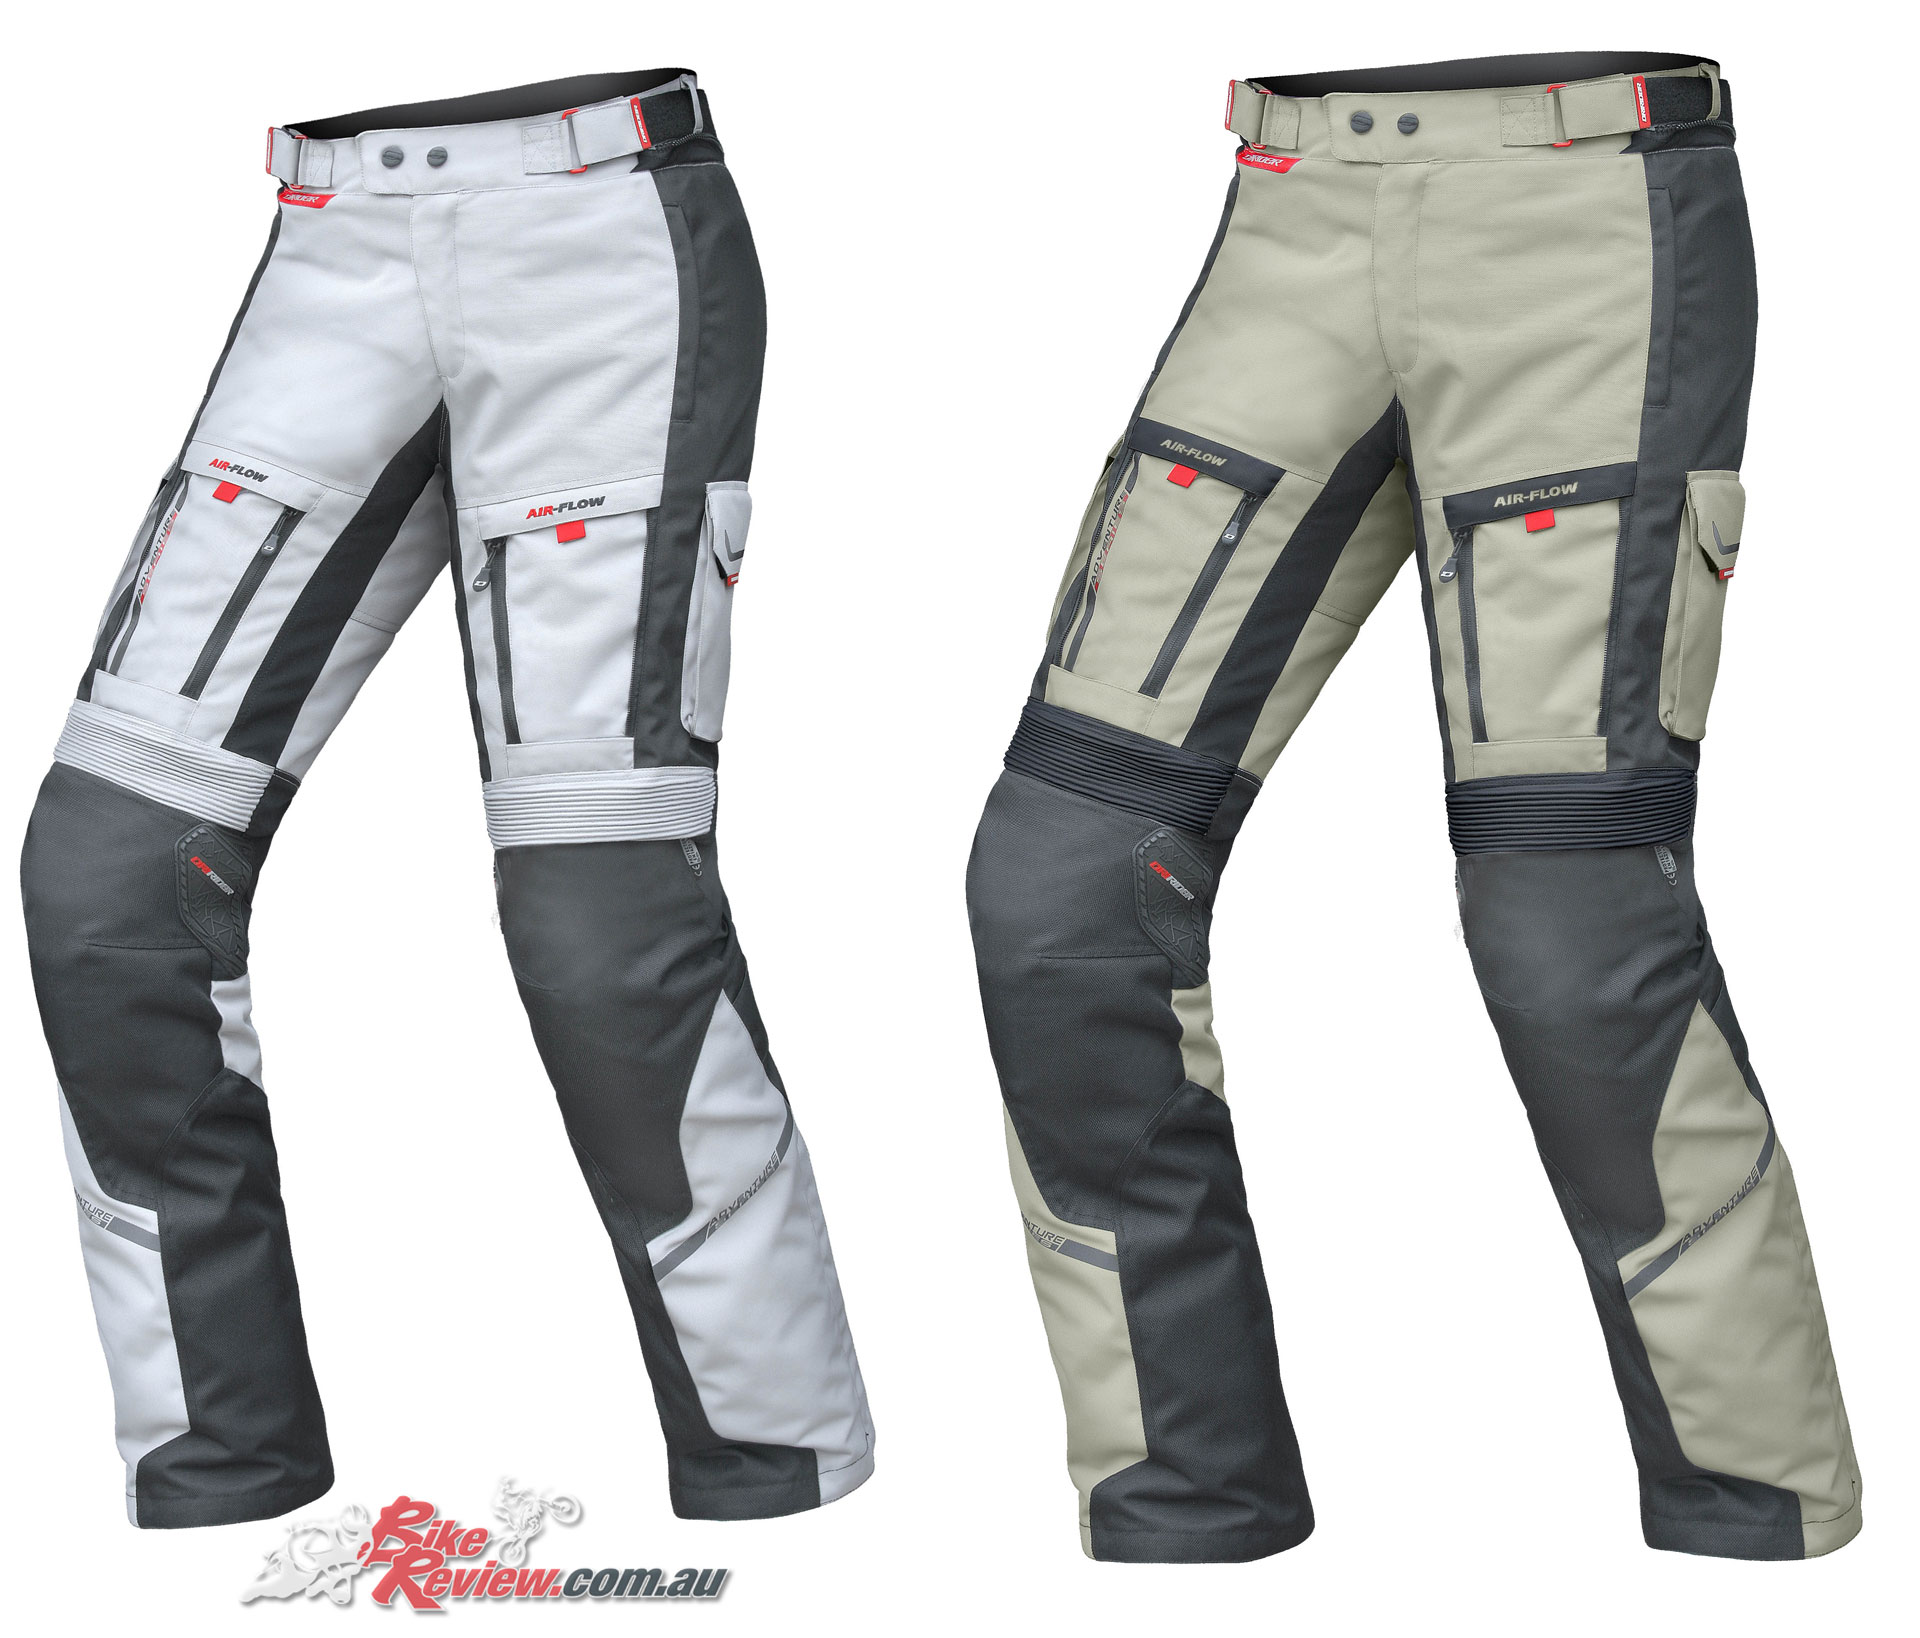 DriRider Vortex Adventure 2 Pant - Ladies (left), Mens (right, Sand)